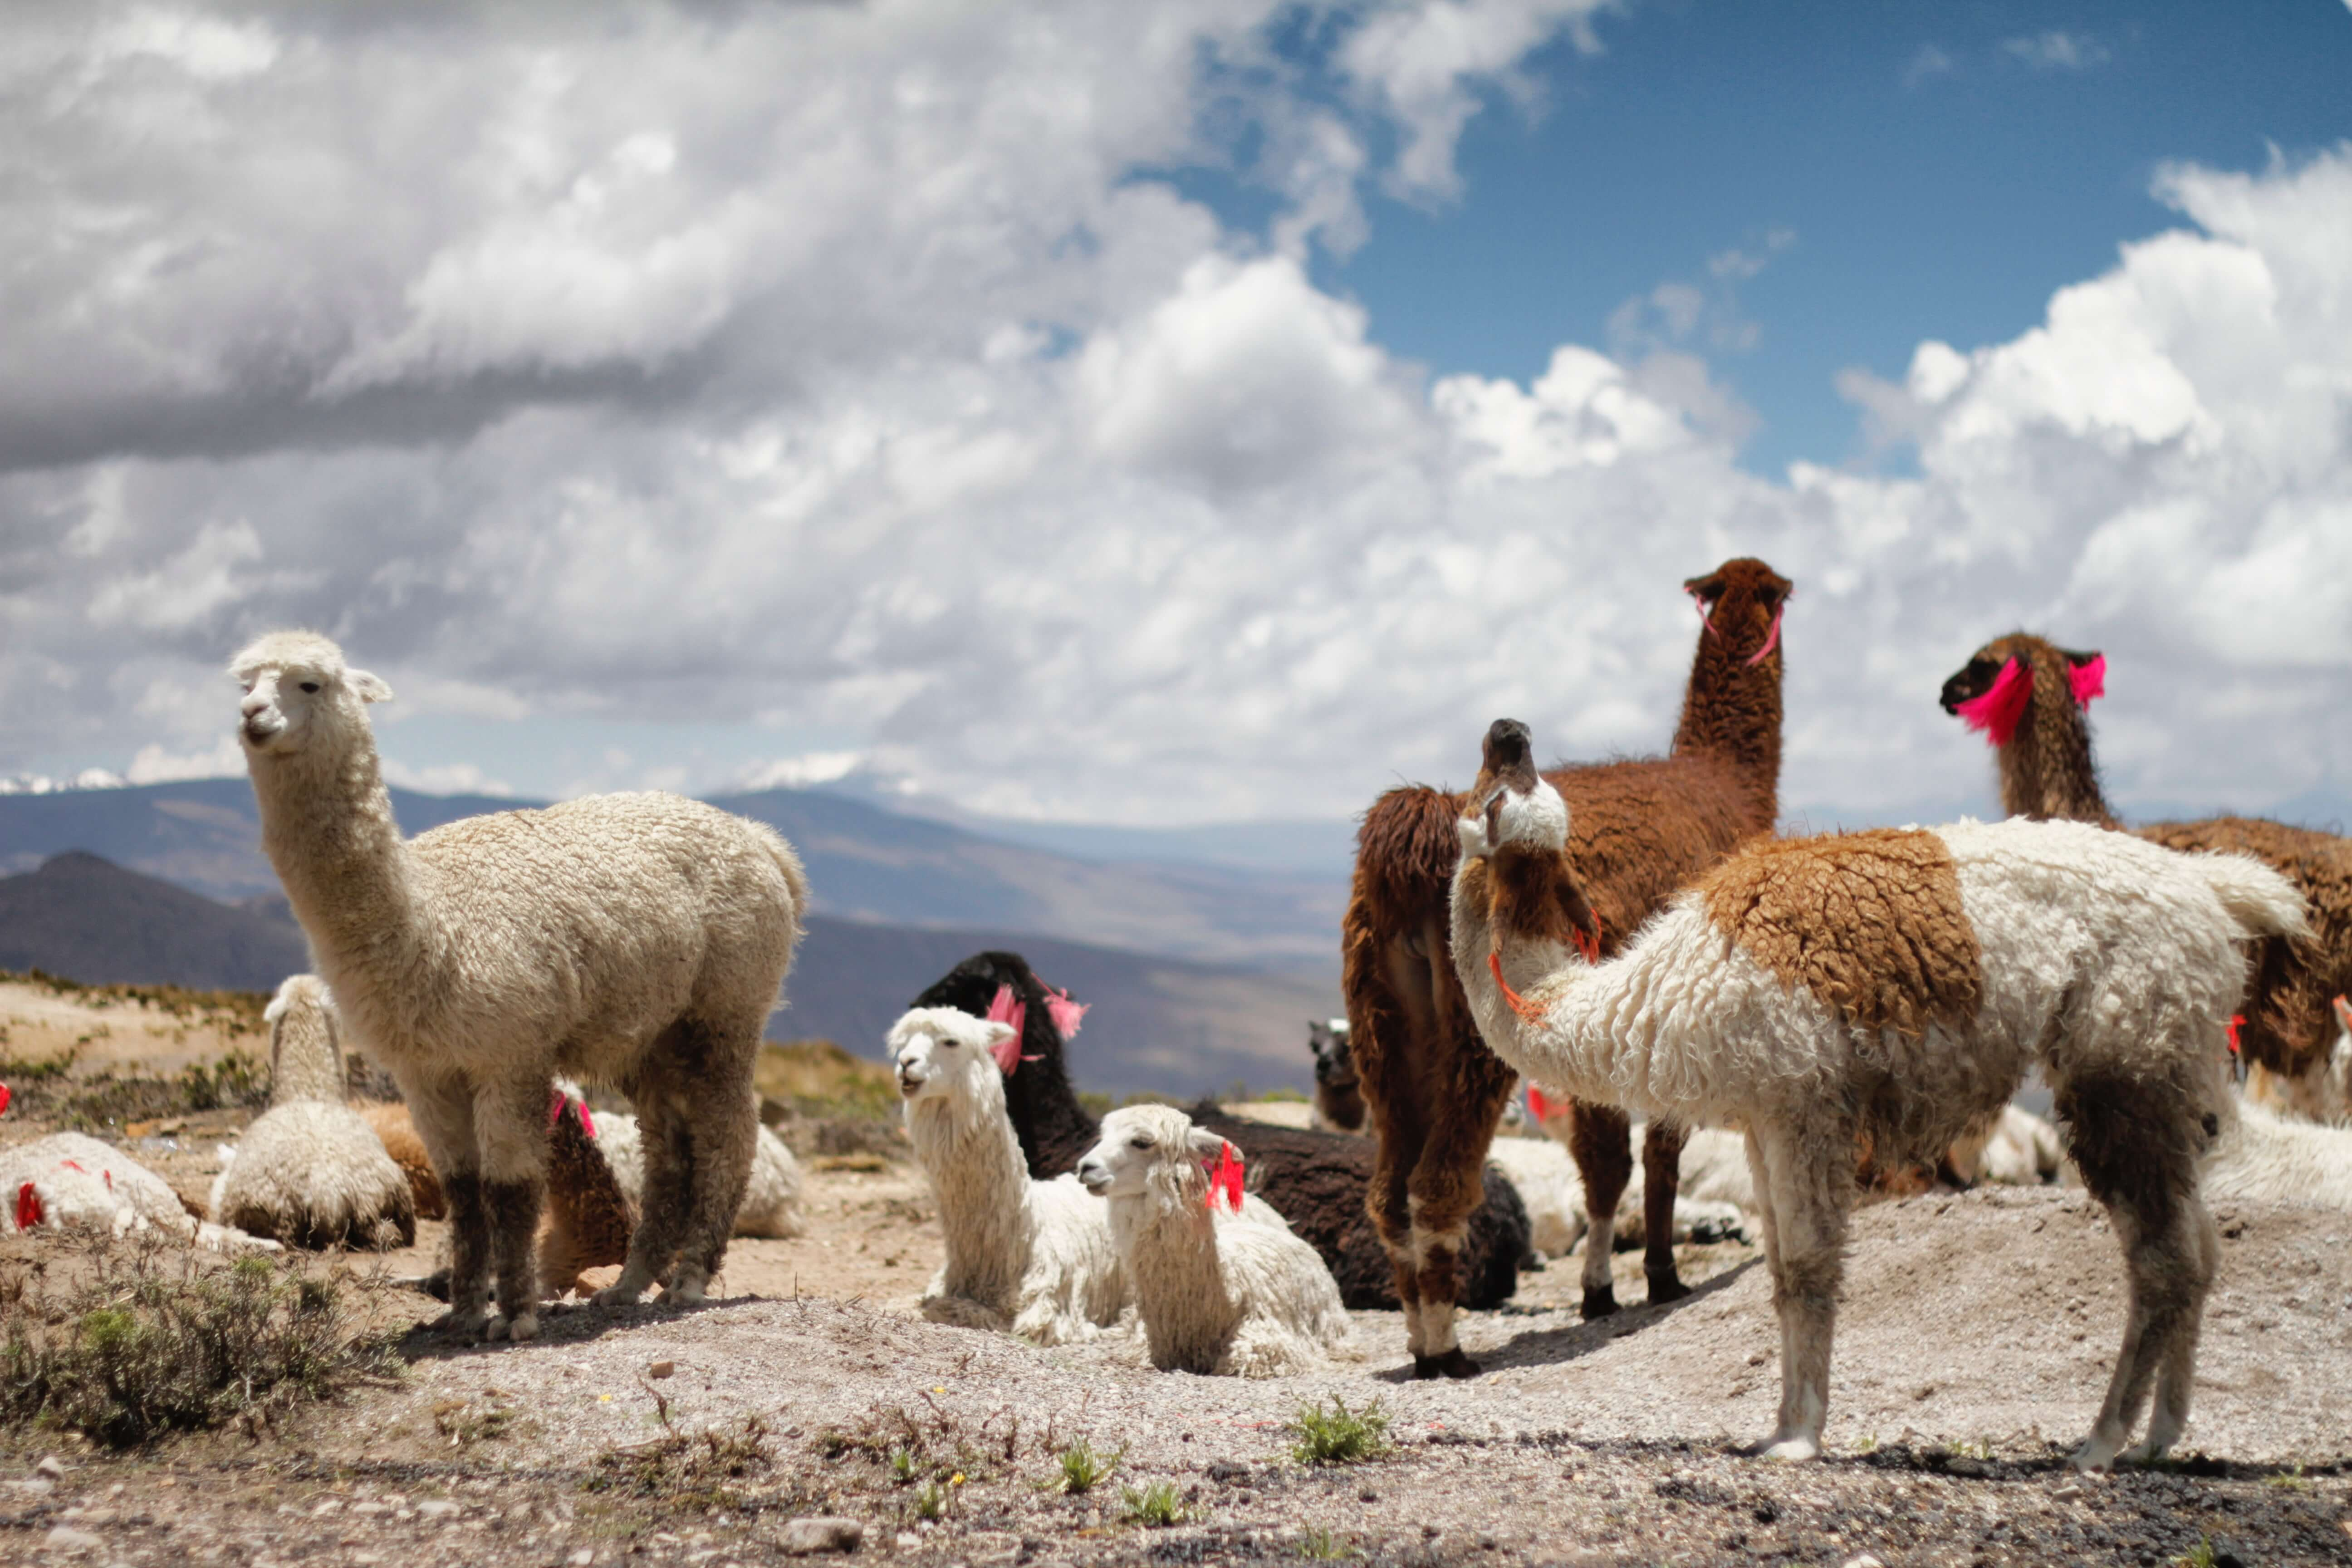 Antibodies from llamas can be used for therapeutics